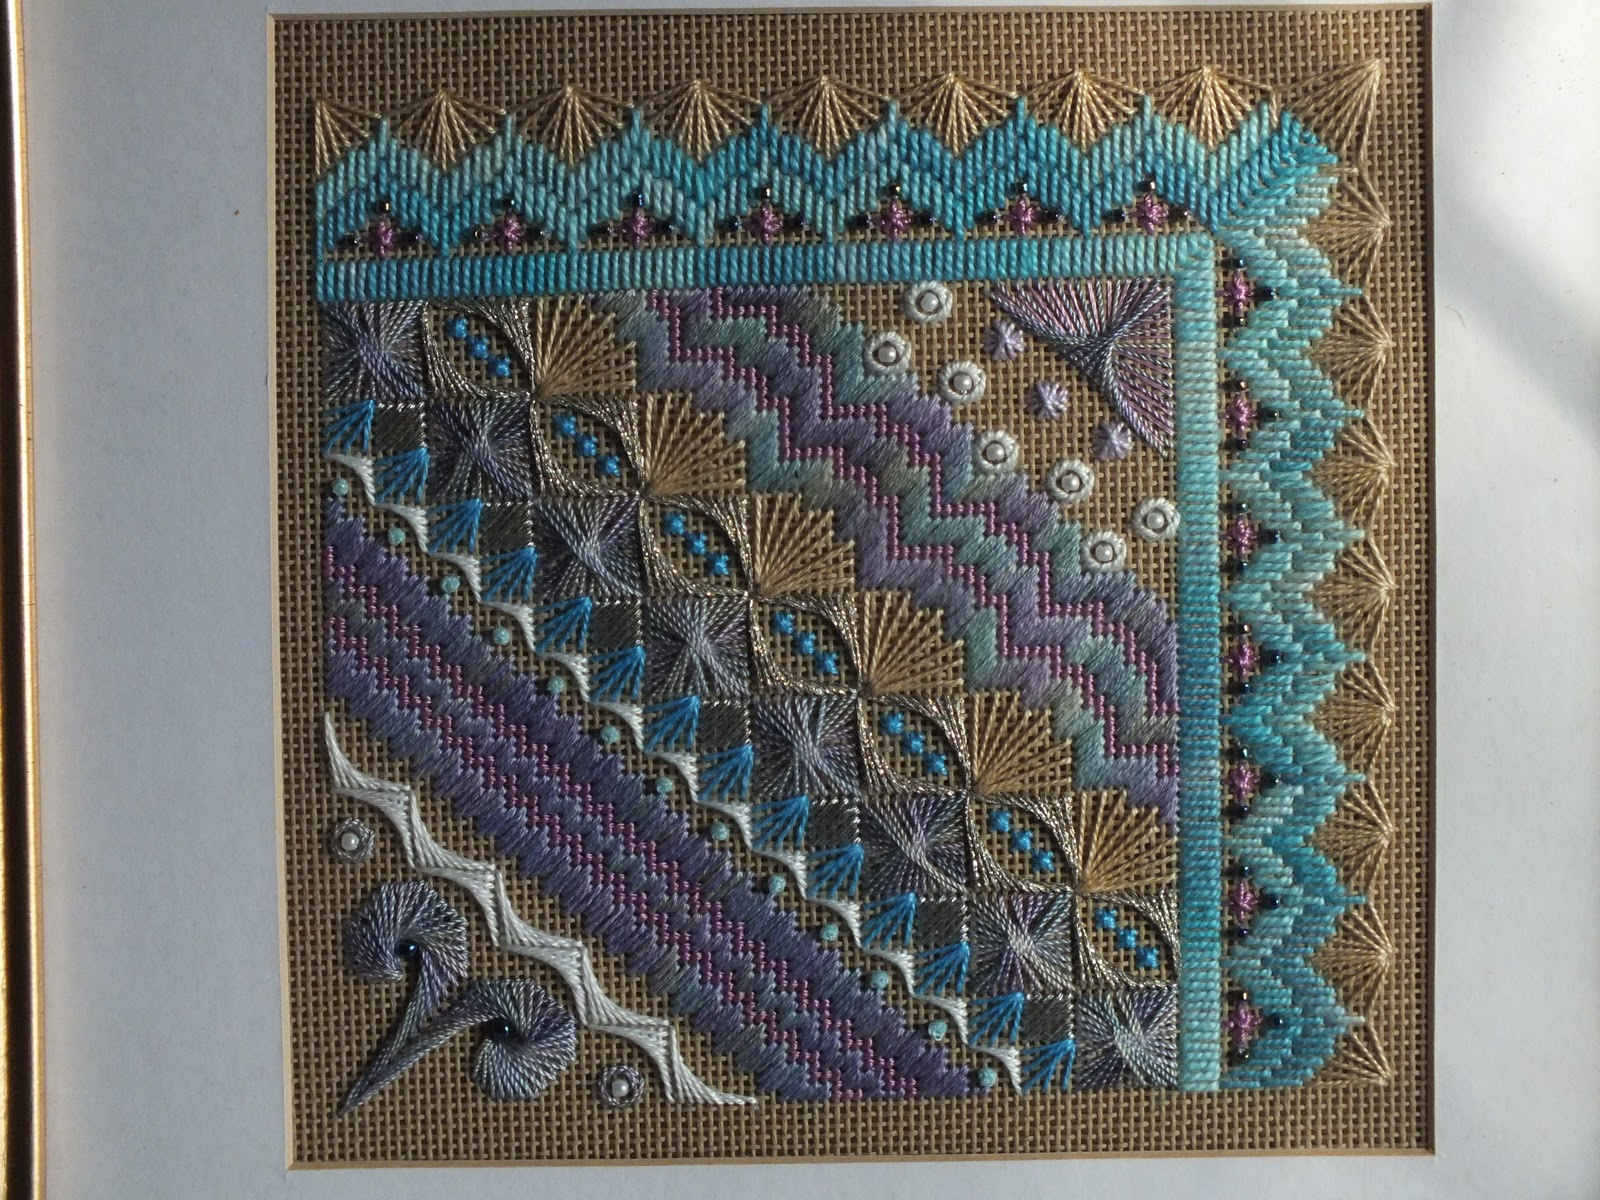 ELLA39S CRAFT CREATIONS Surf And Sand Canvaswork Embroidery